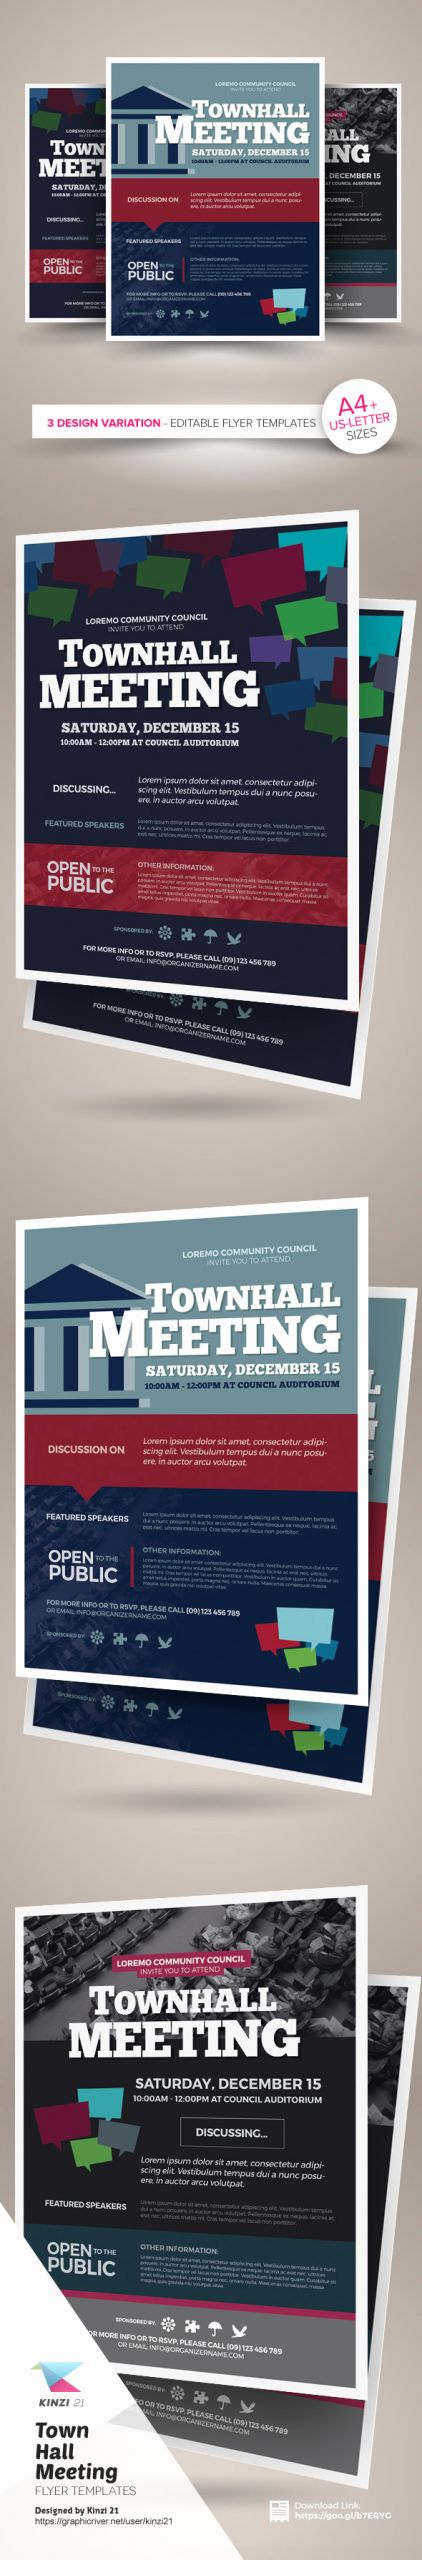 Town Hall Meeting Template Awesome town Hall Meeting Flyer Templates On Behance